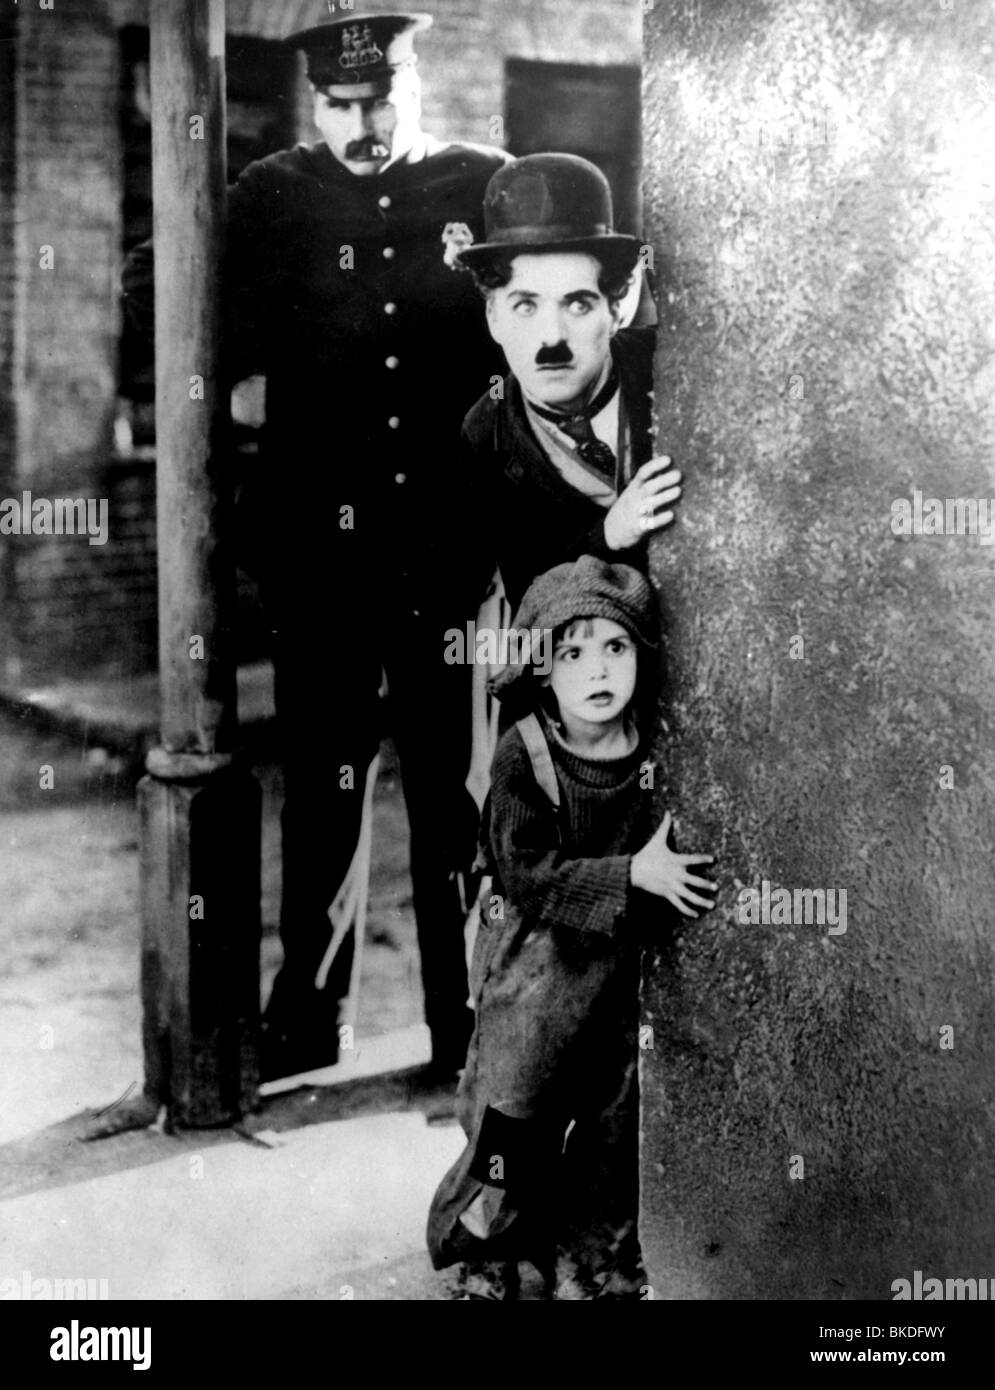 the kid charlie chaplin summary